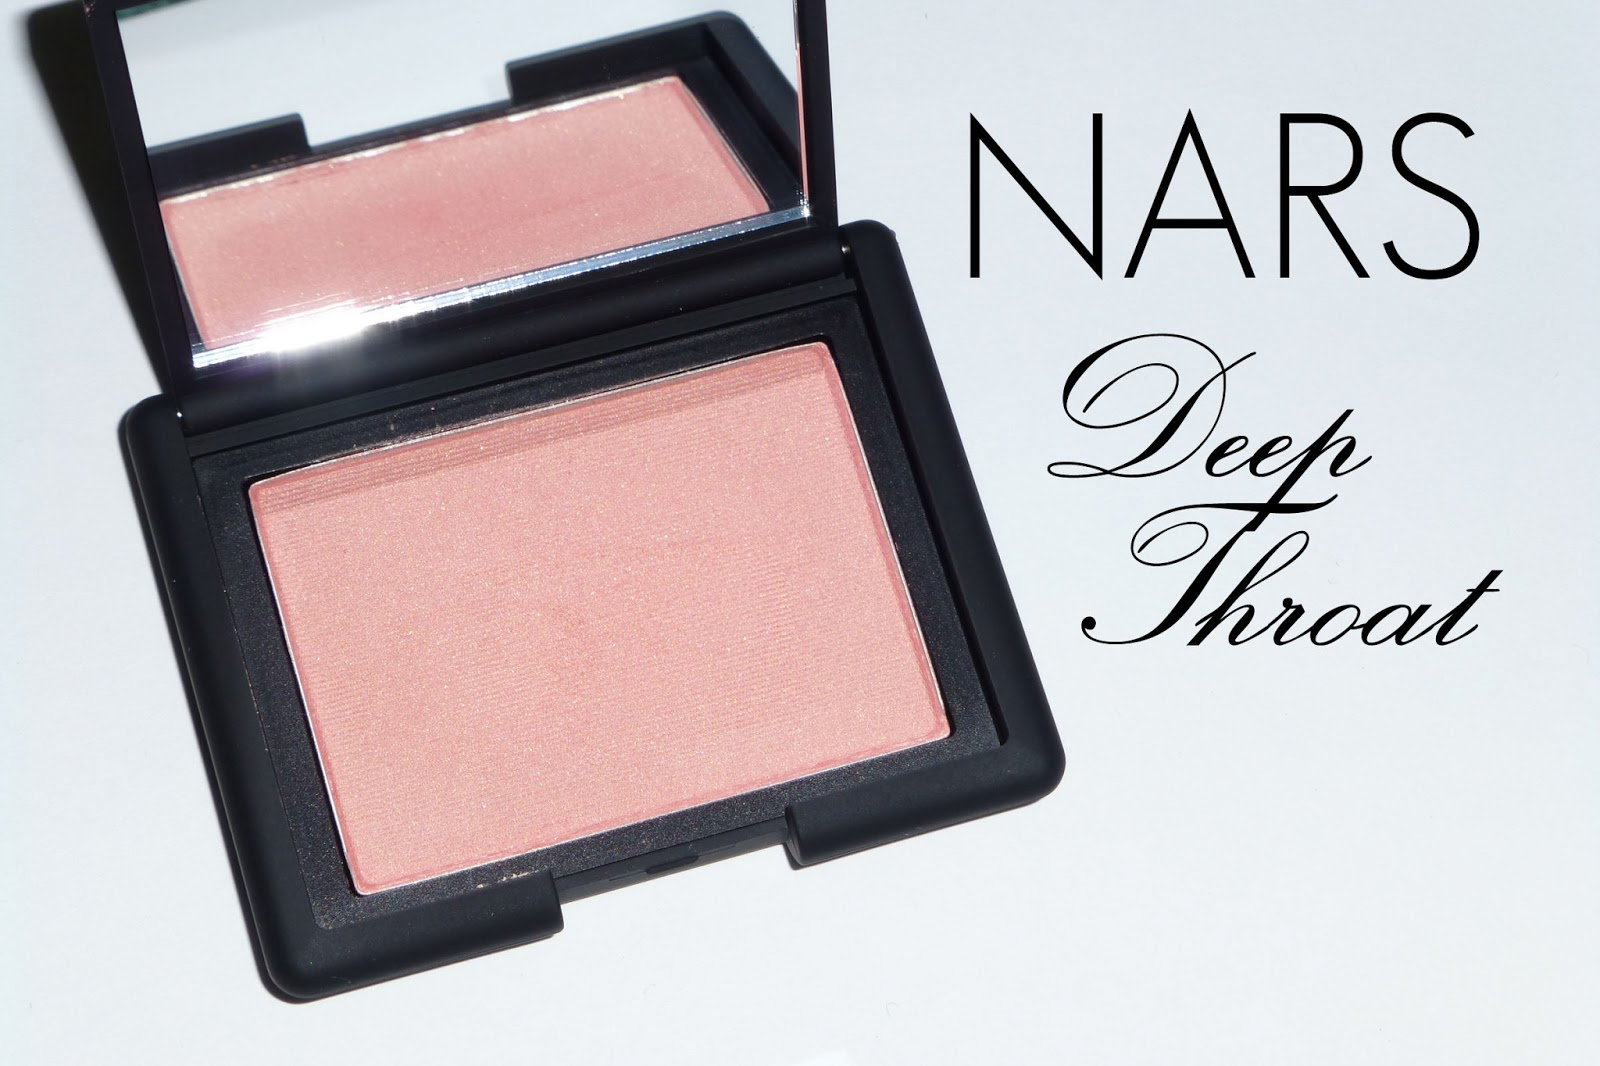 nars deep throat blush review photos swatches the skin and beauty blog. Black Bedroom Furniture Sets. Home Design Ideas